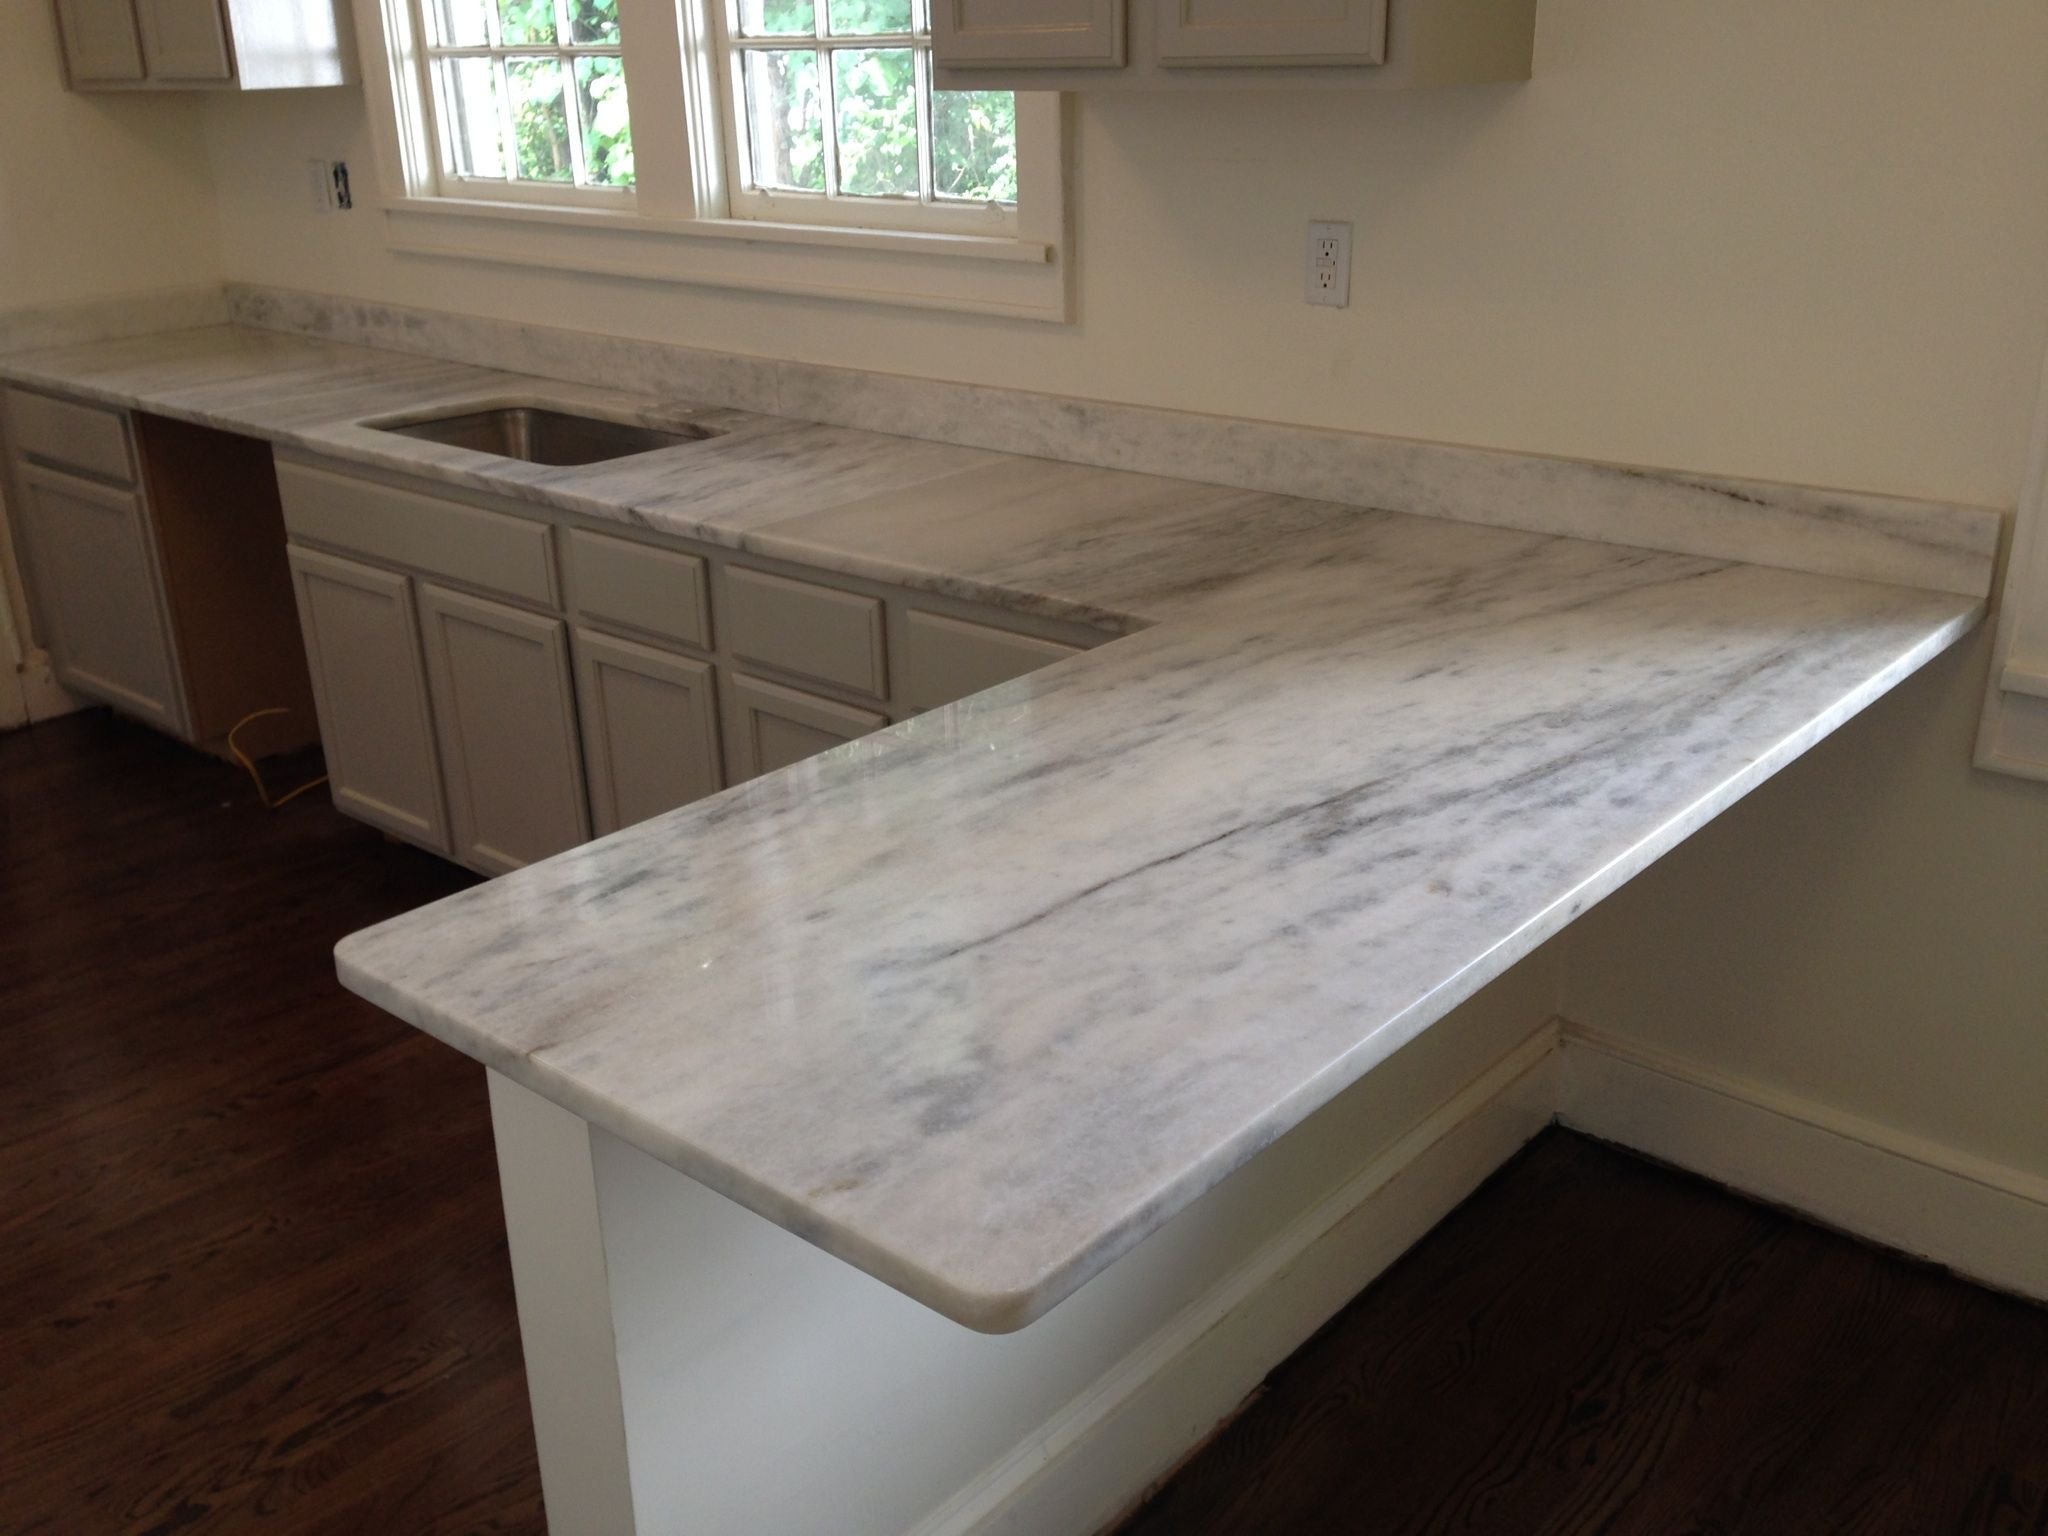 on cabinets pin farm and kitchen thick with marble tone sink carrara gray countertops countertop our